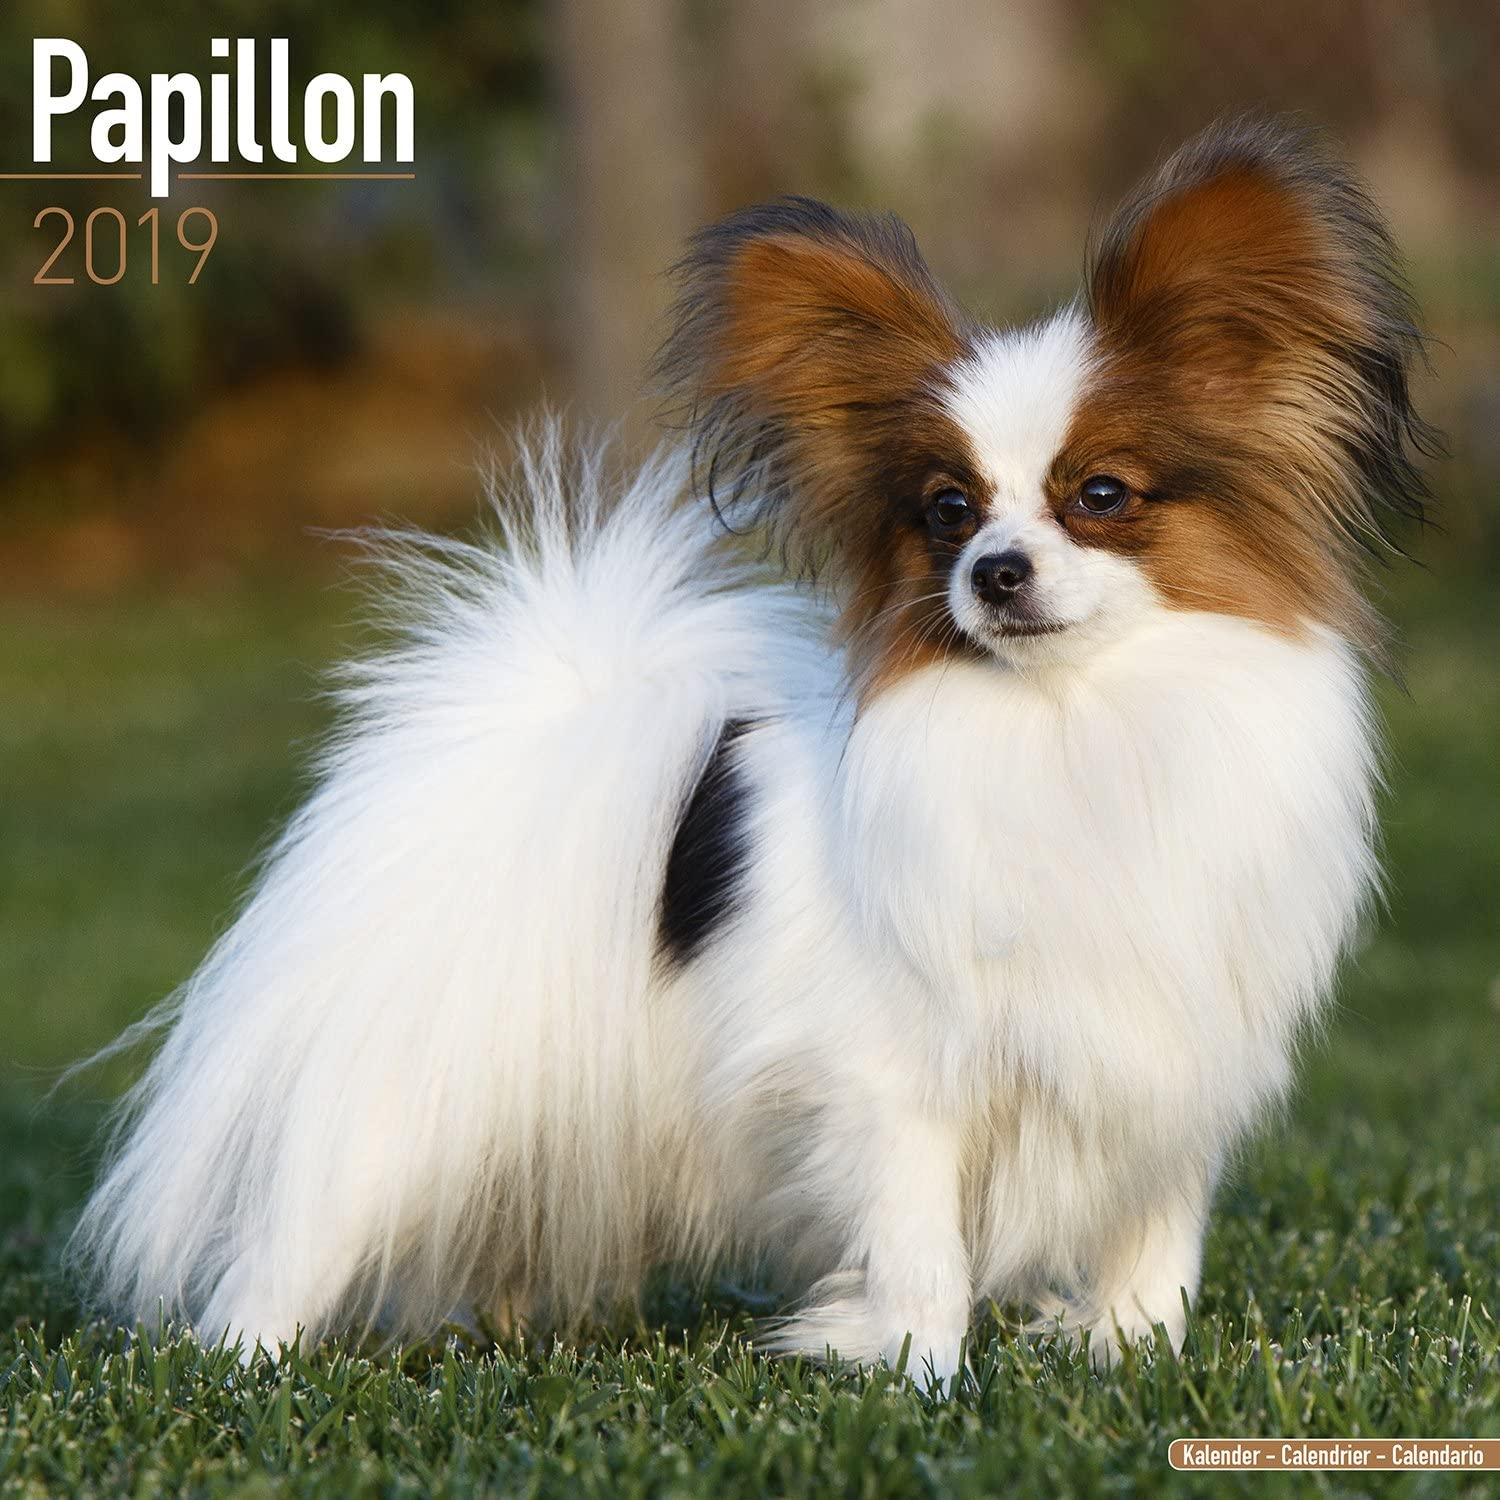 Papillon Calendar - Dog Breed Calendars - 2018 - 2019 Wall Calendars - 16  Month by Avonside: MegaCalendars: 9781785803529: Amazon.com: Books